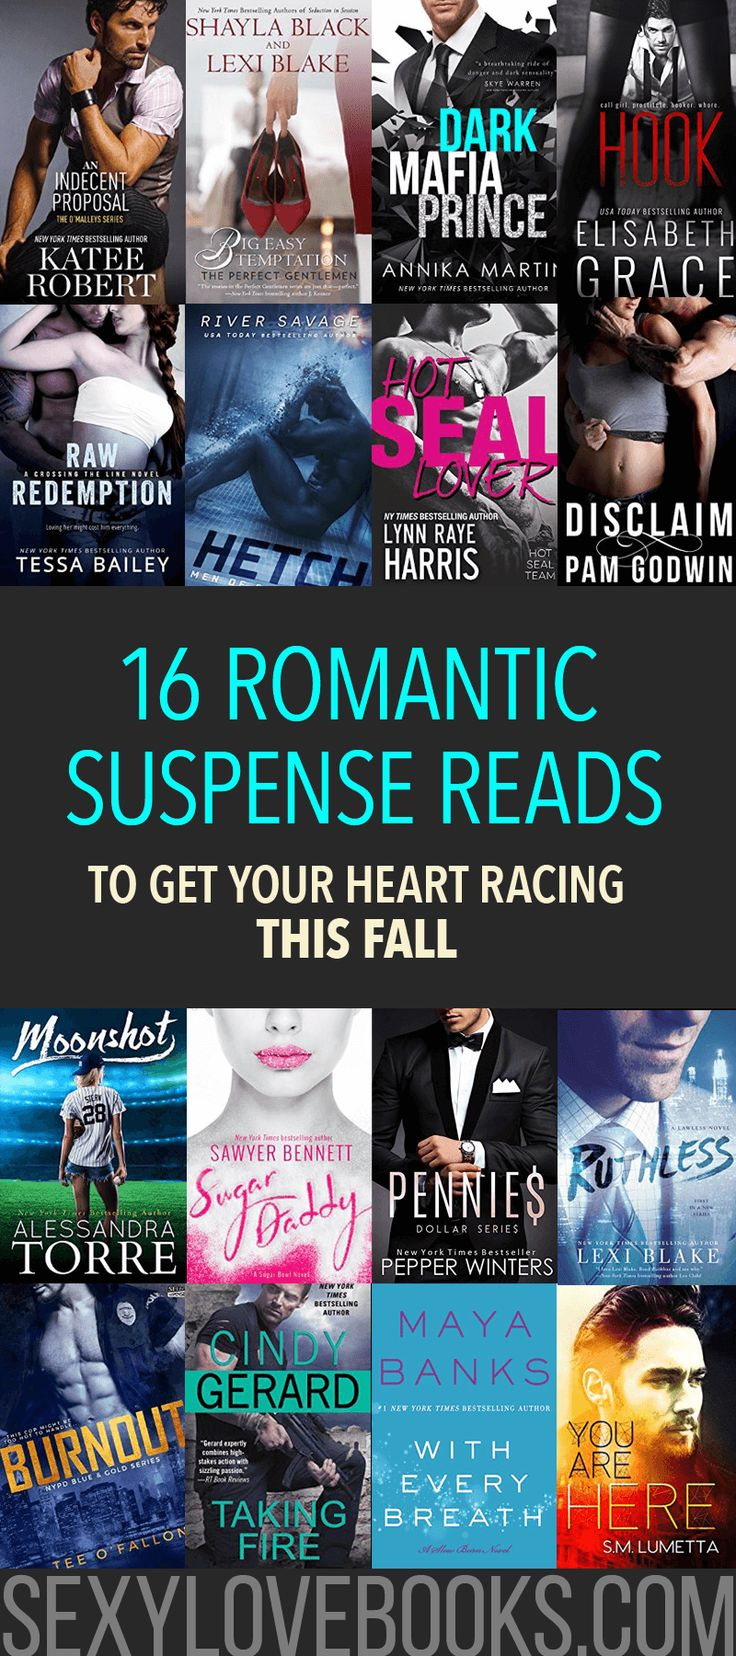 16 Romantic Suspense Reads To Get Your Heart Racing This Fall